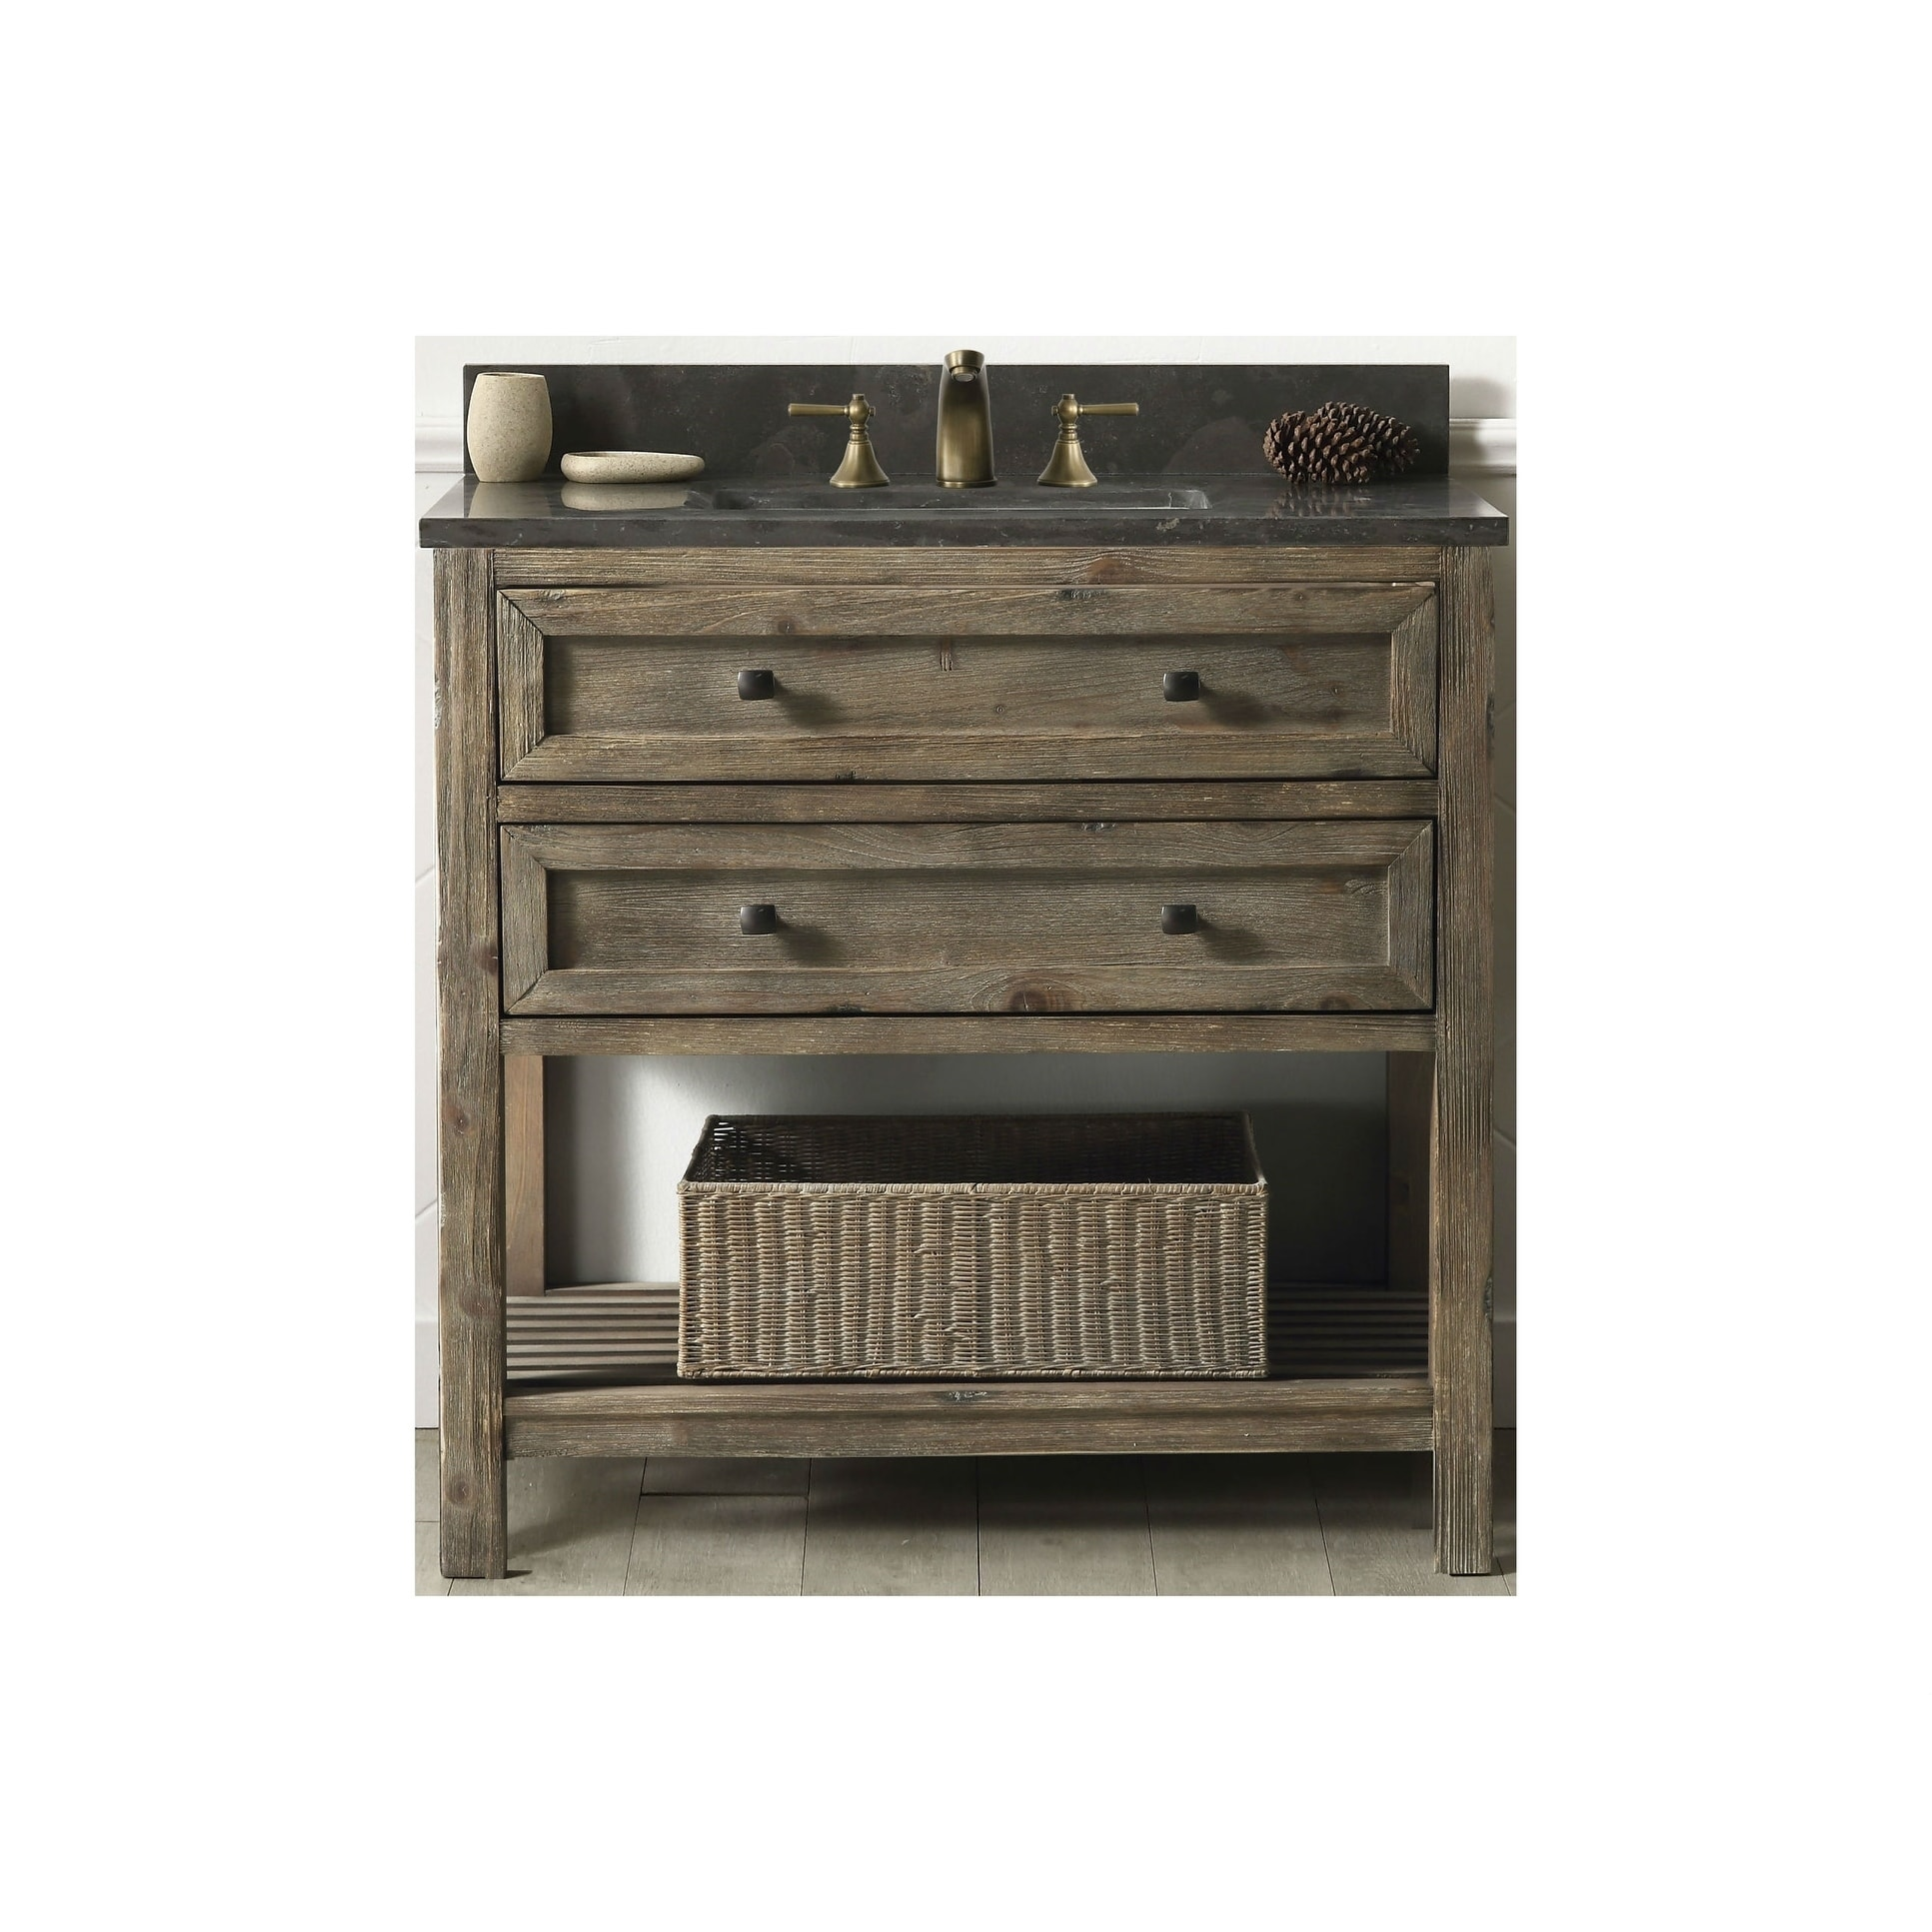 Bathroom Vanity In Rustic Brown With Moon Stone Top Free Shipping Today 18258364